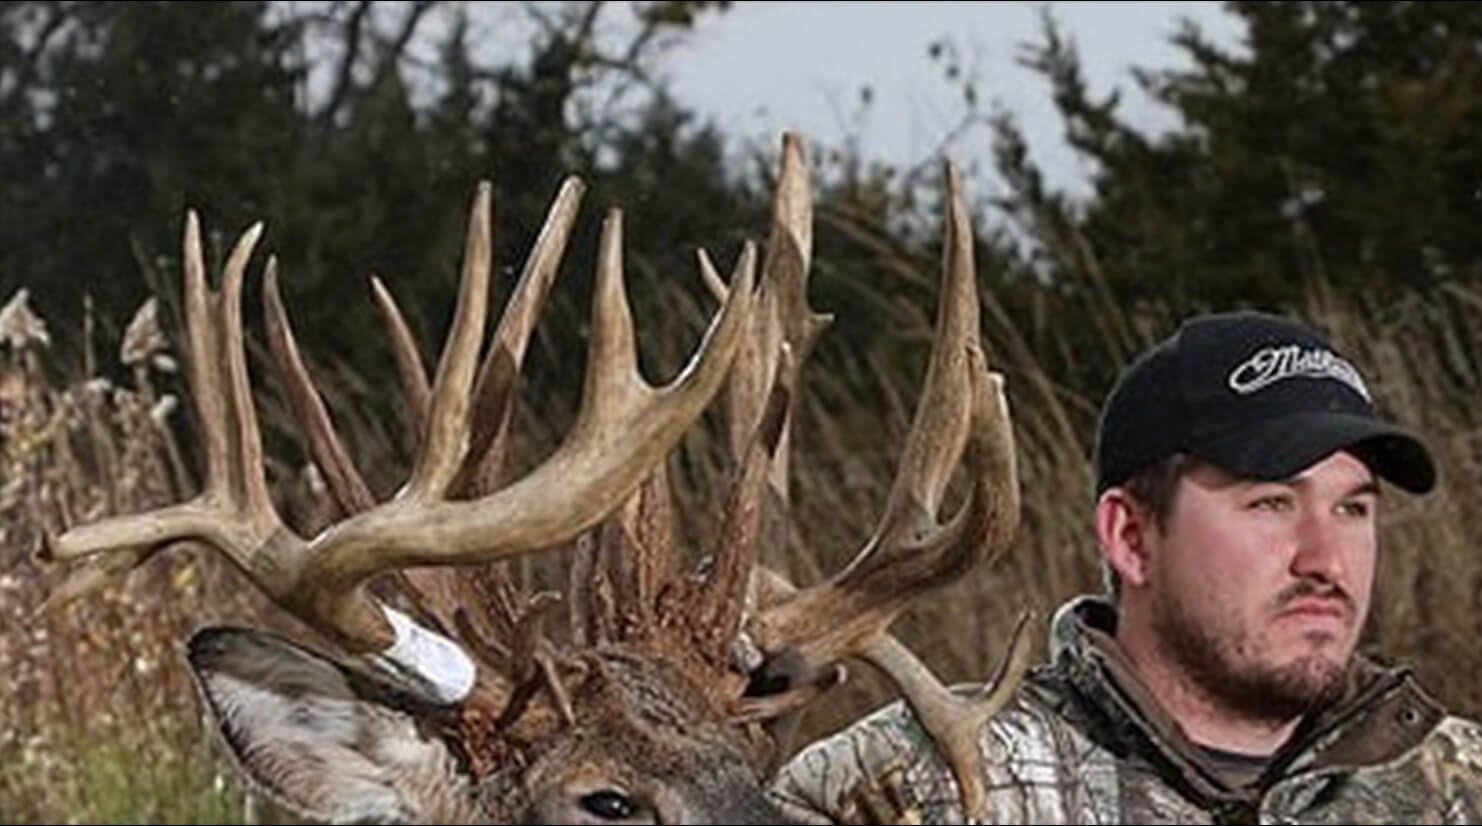 The 254-inch Iowa Giant